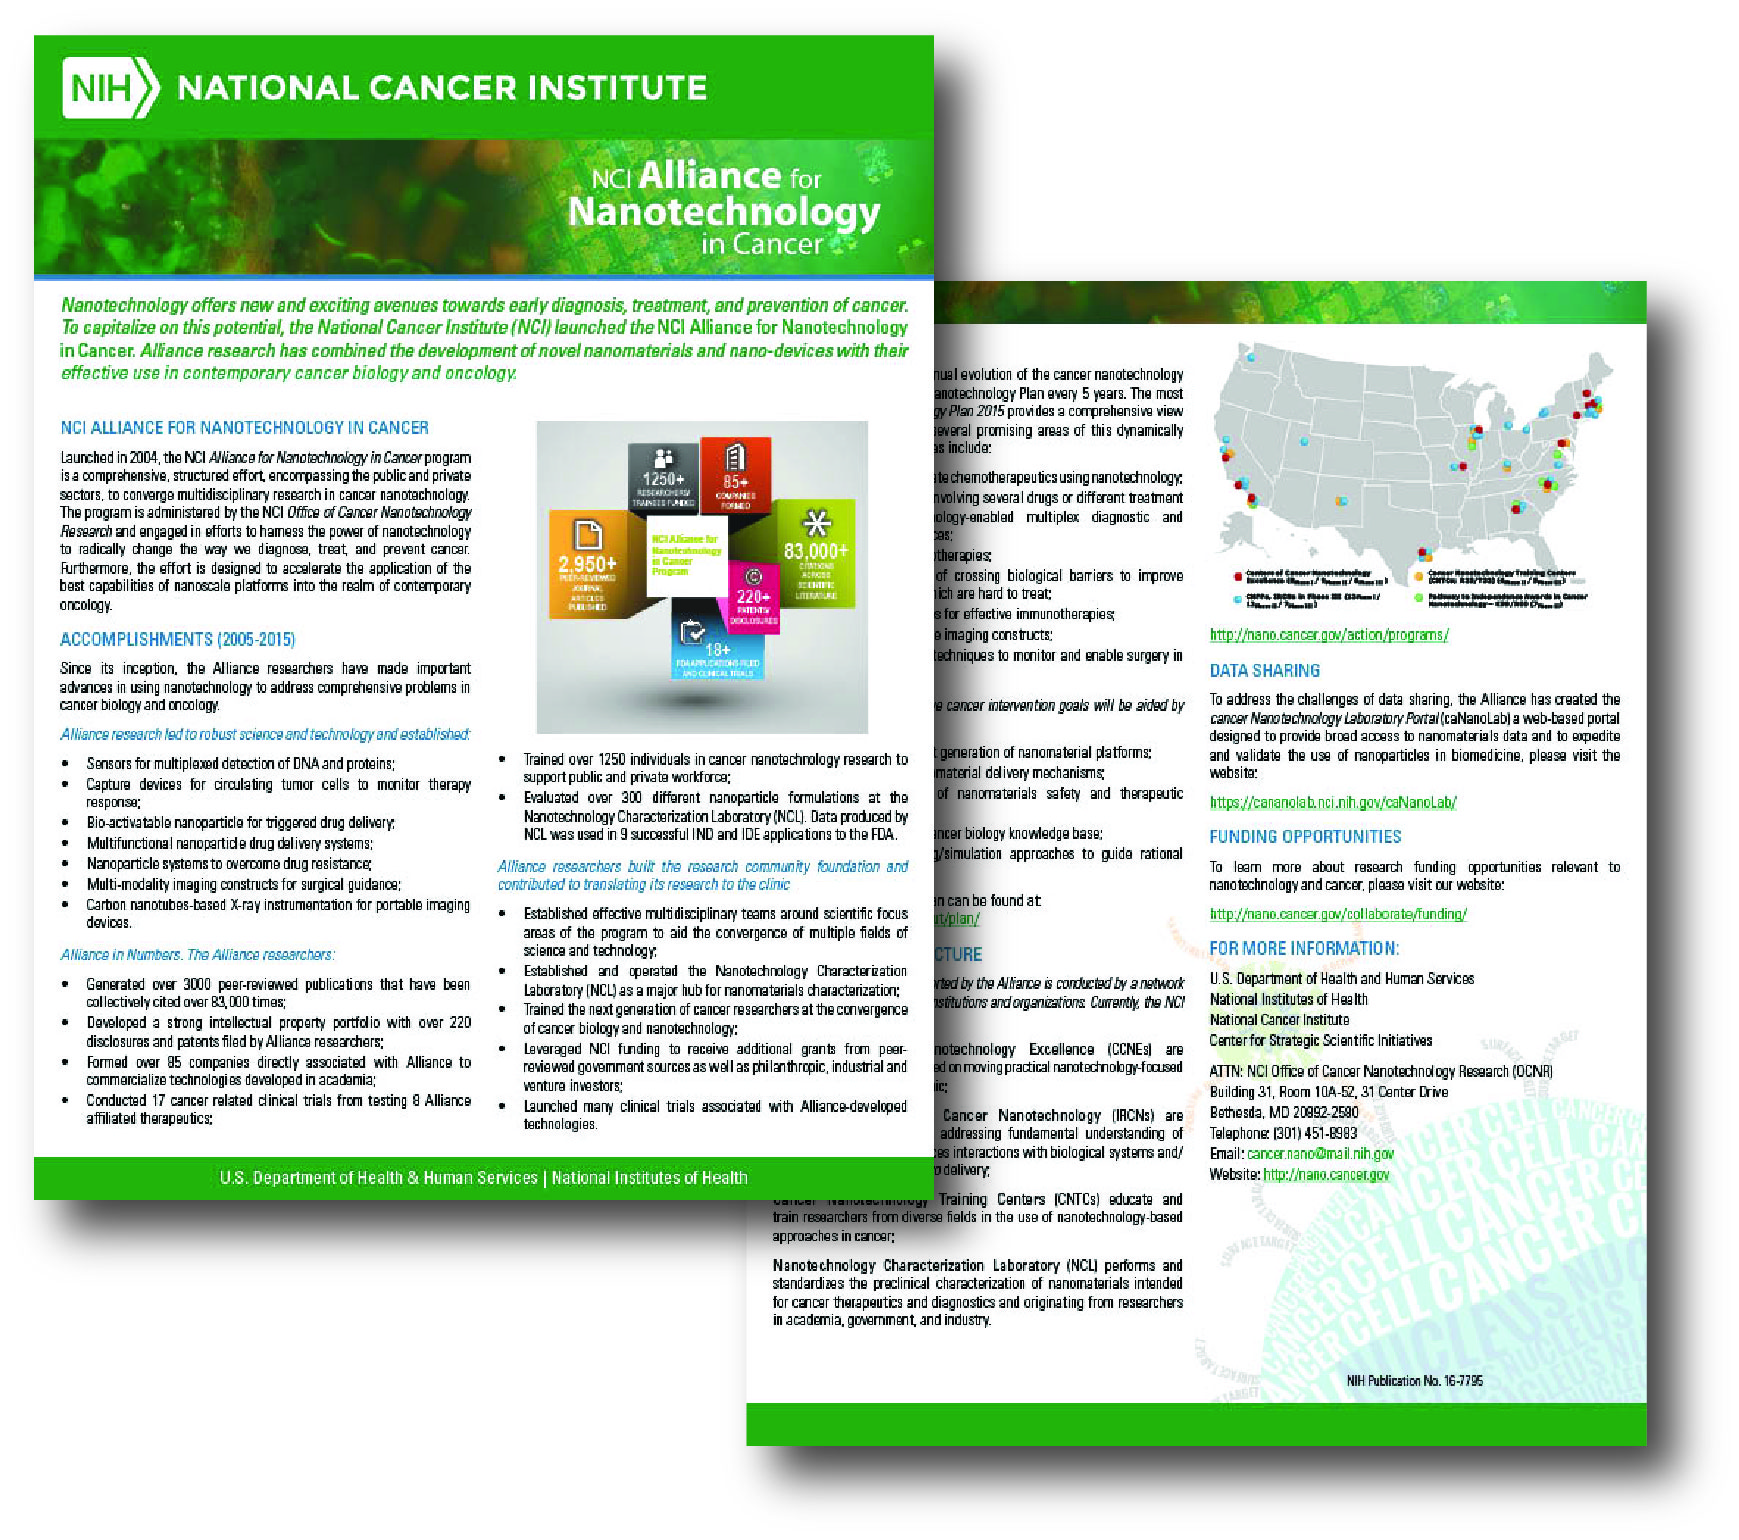 Factsheet - NCI Alliance for Nanotechnology in Cancer Fact Sheet